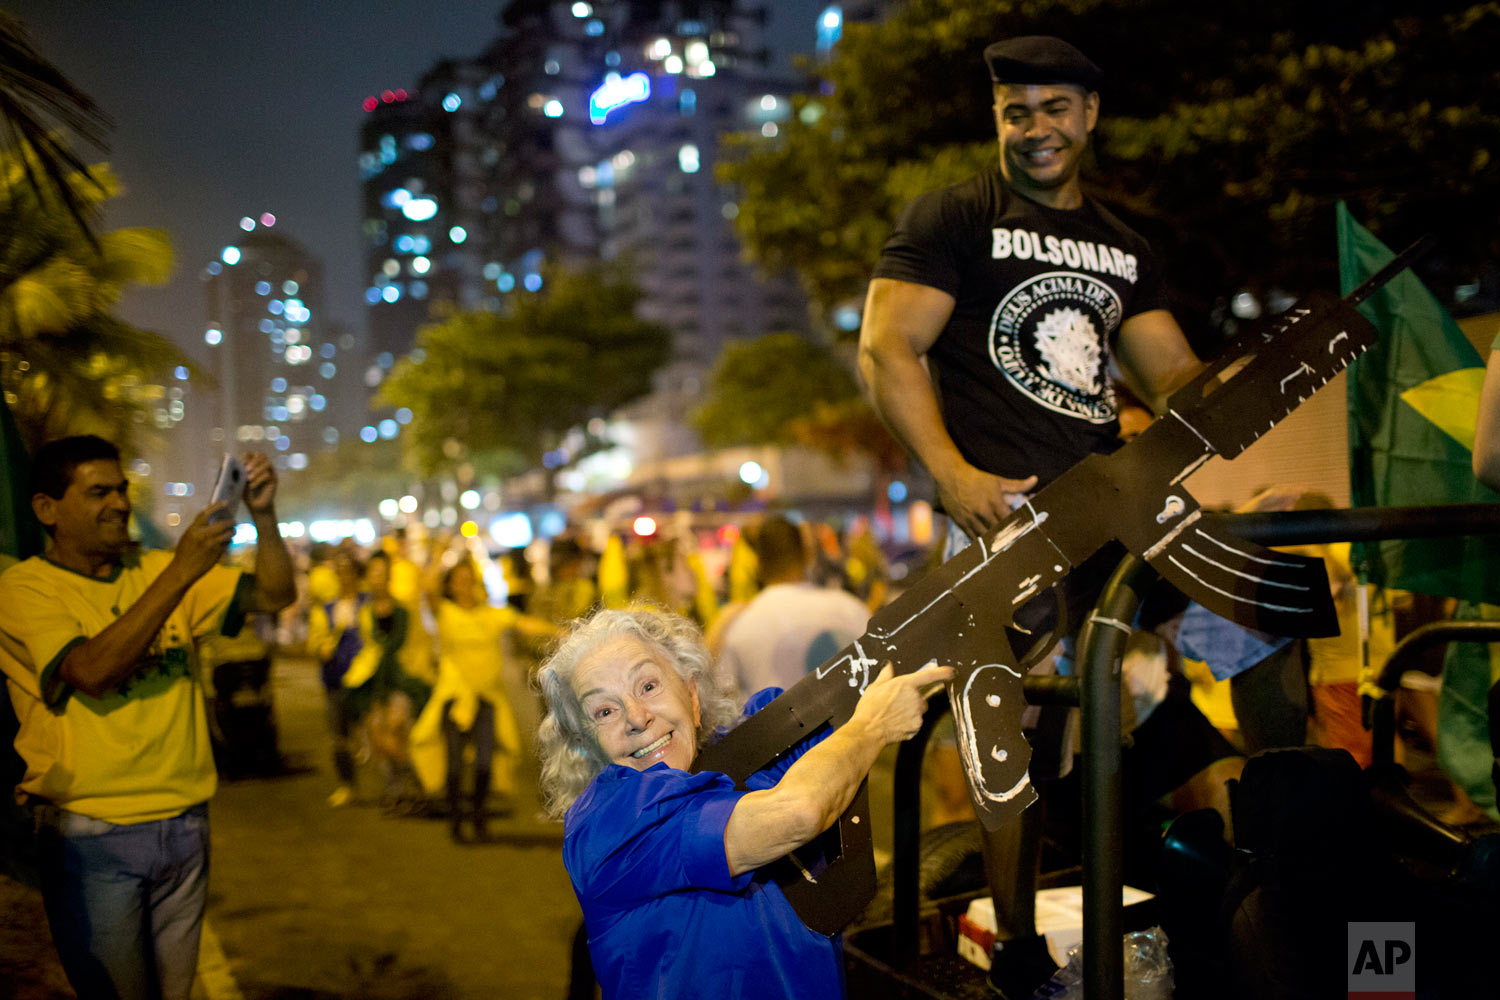 A supporter of presidential candidate Jair Bolsonaro poses for a photo with an oversized, fake rifle, as she celebrates the election runoff results in Rio de Janeiro, Brazil, Oct. 28, 2018. Brazil's Supreme Electoral Tribunal declared the right-leaning congressman the next president of Latin America's biggest country. (AP Photo/Silvia Izquierdo)